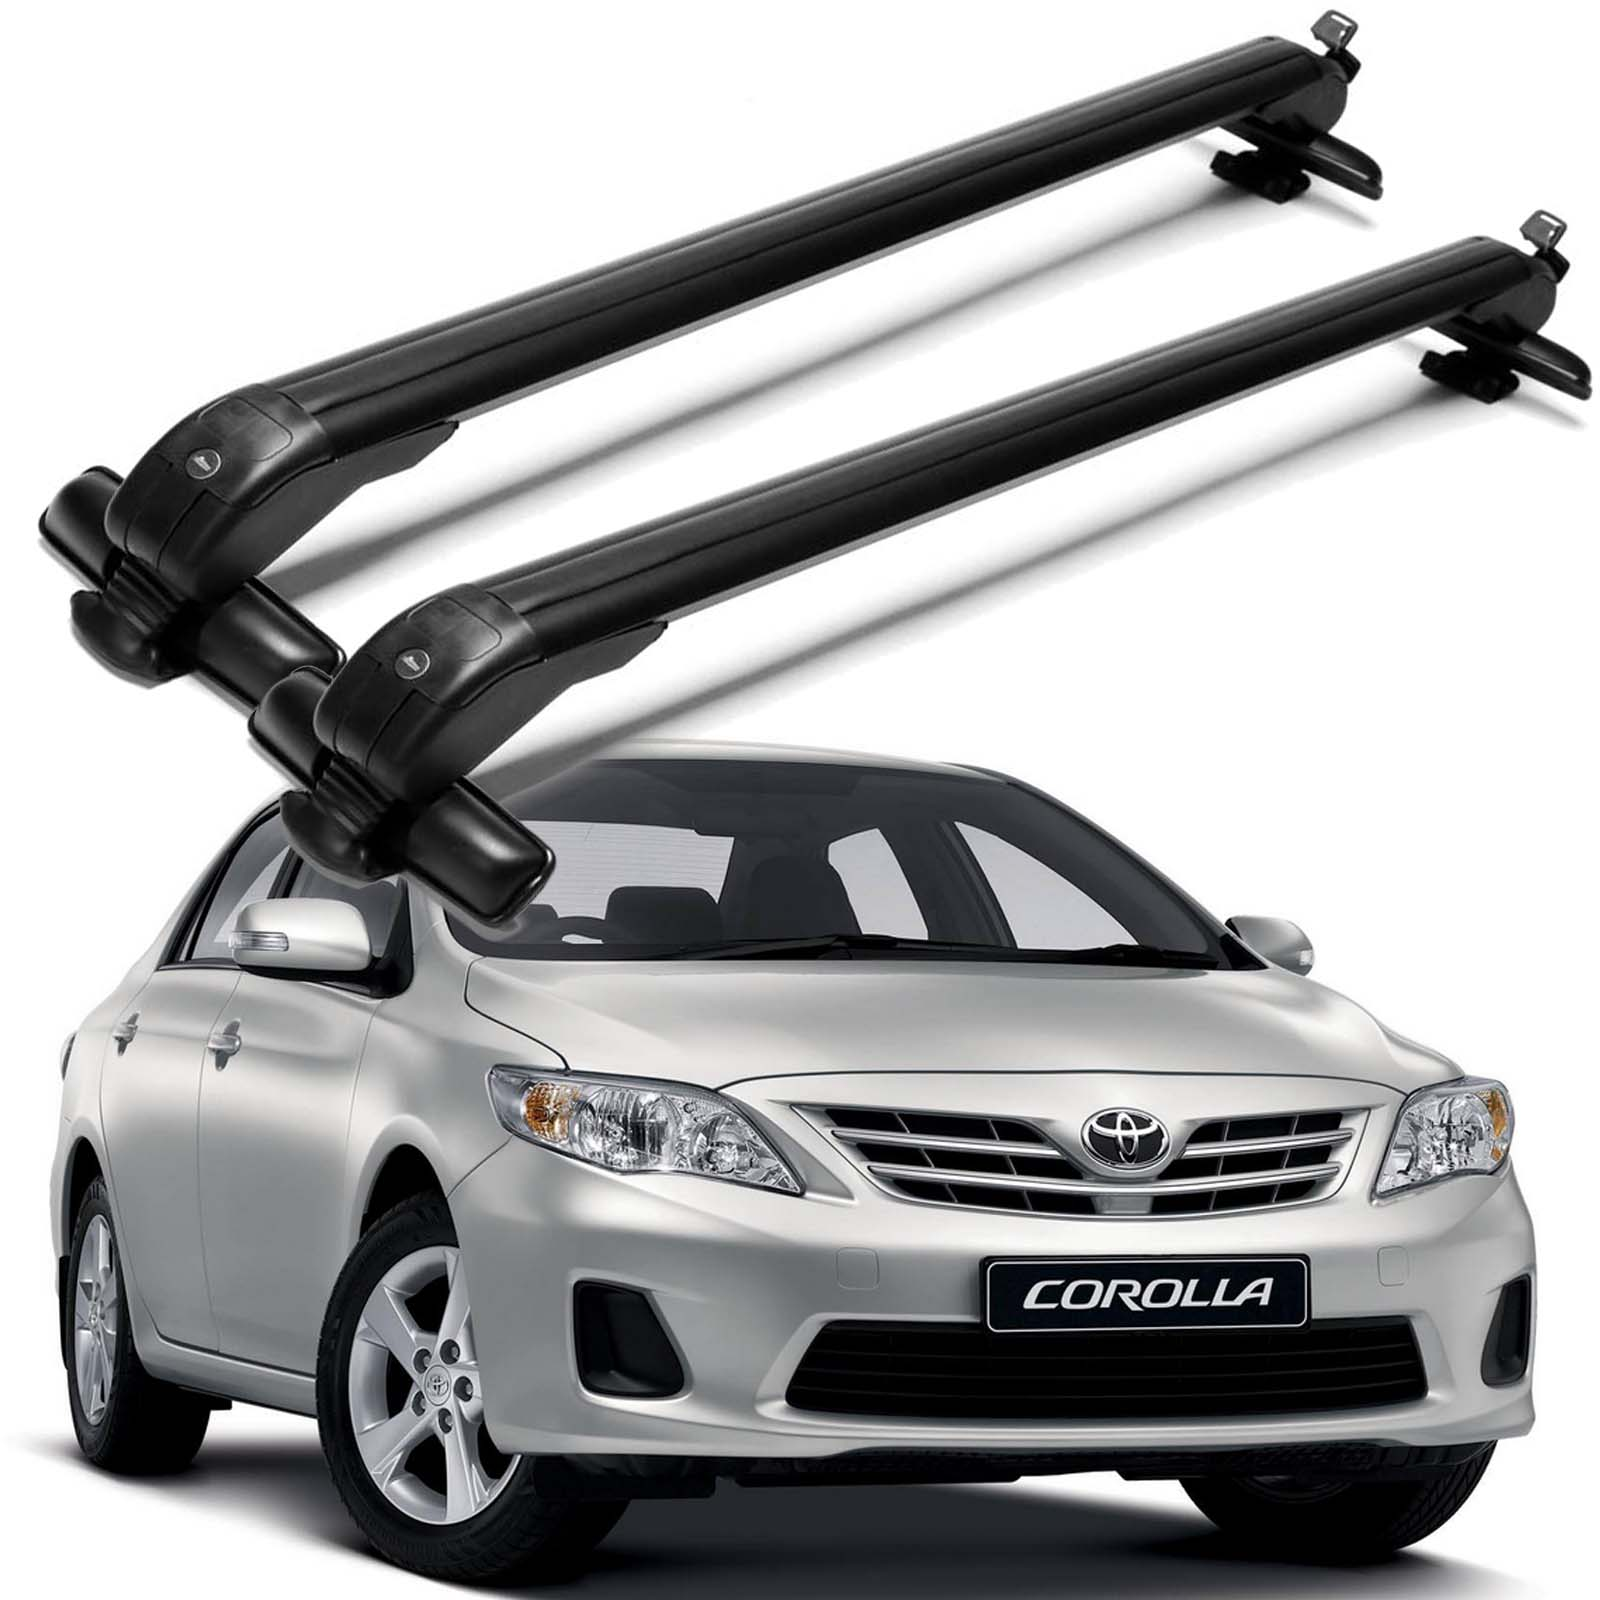 Details About Car Roof Rack For Toyota Corolla 1998 2016 Cross Bar Top Luggage Carrier 2pcs